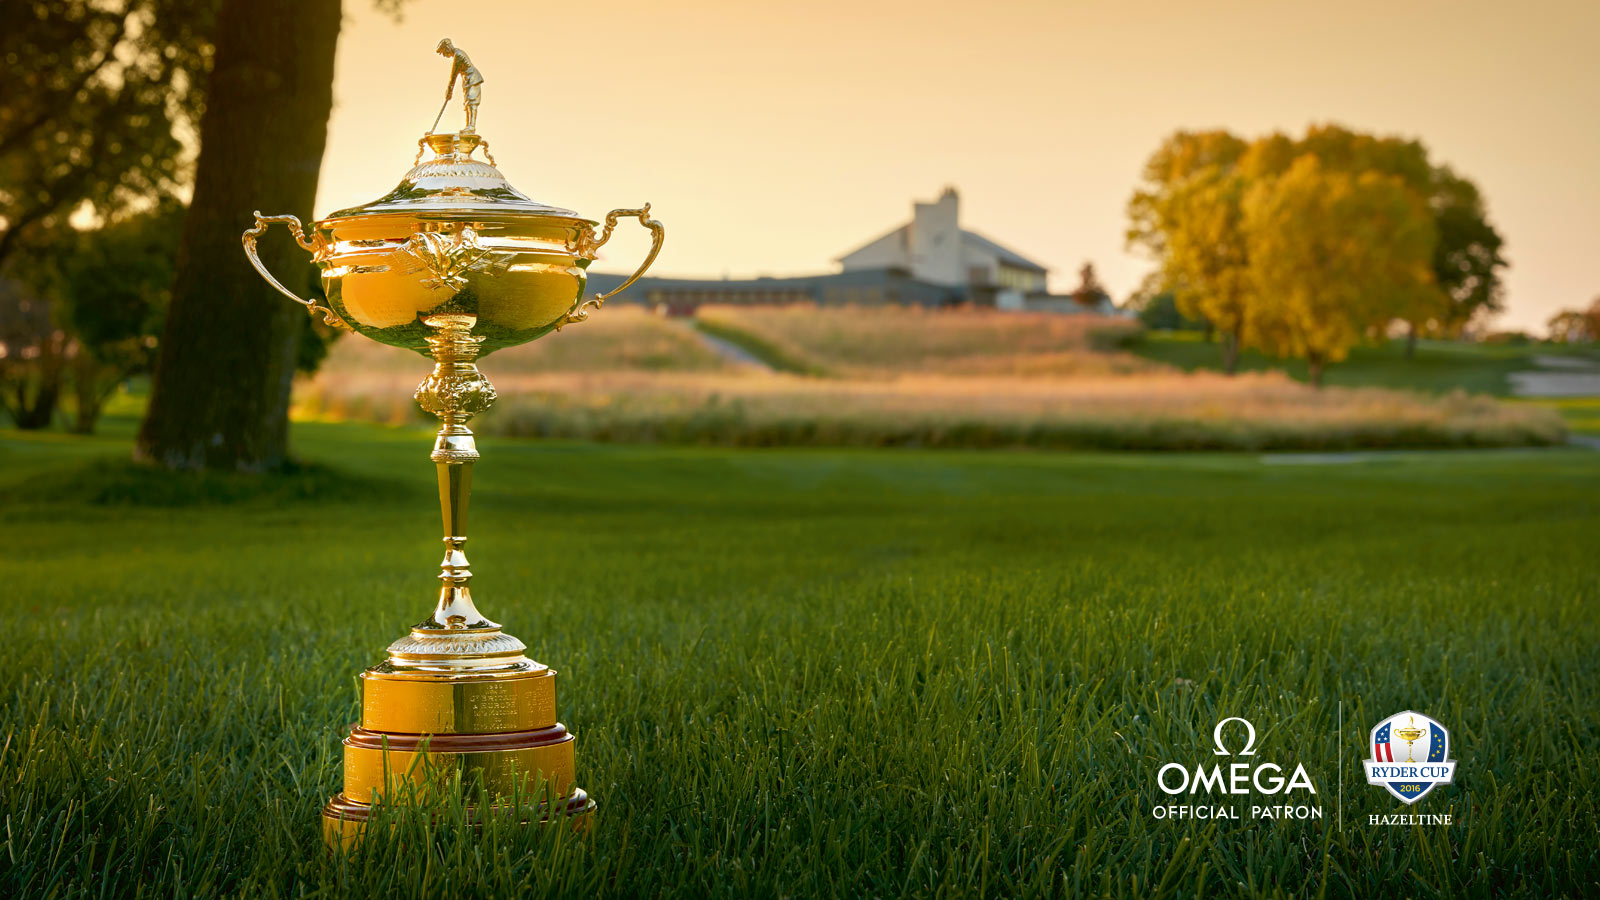 The cup of the Ryder Cup golf competition, standing on grass with fields and trees in the background.